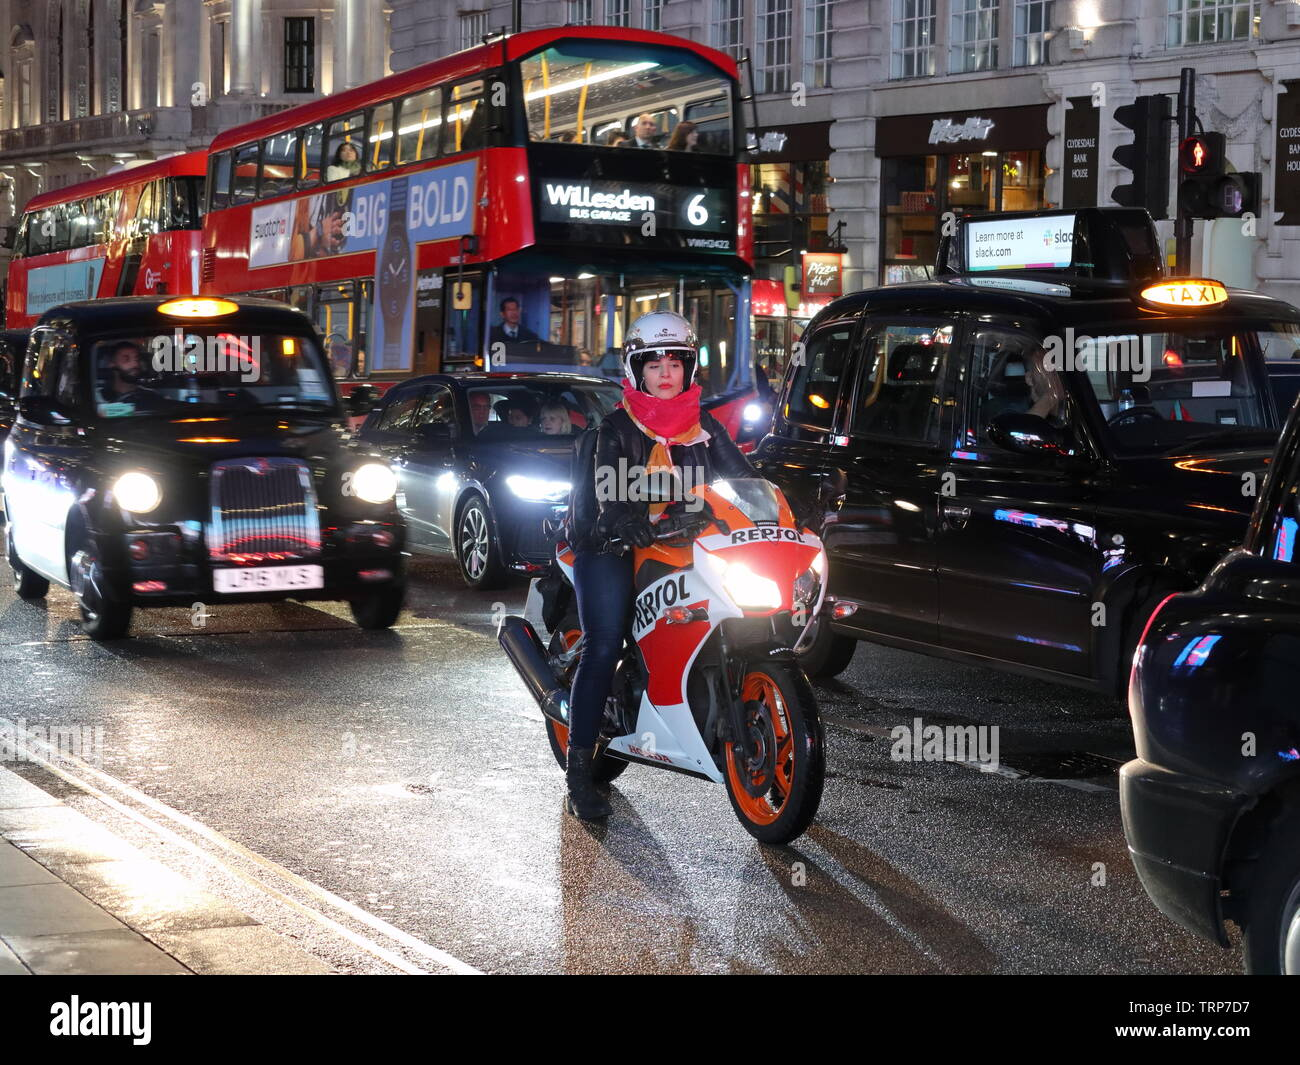 woman-biker-amonst-traffic-at-night-piccadilly-london-england-uk-TRP7D7.jpg